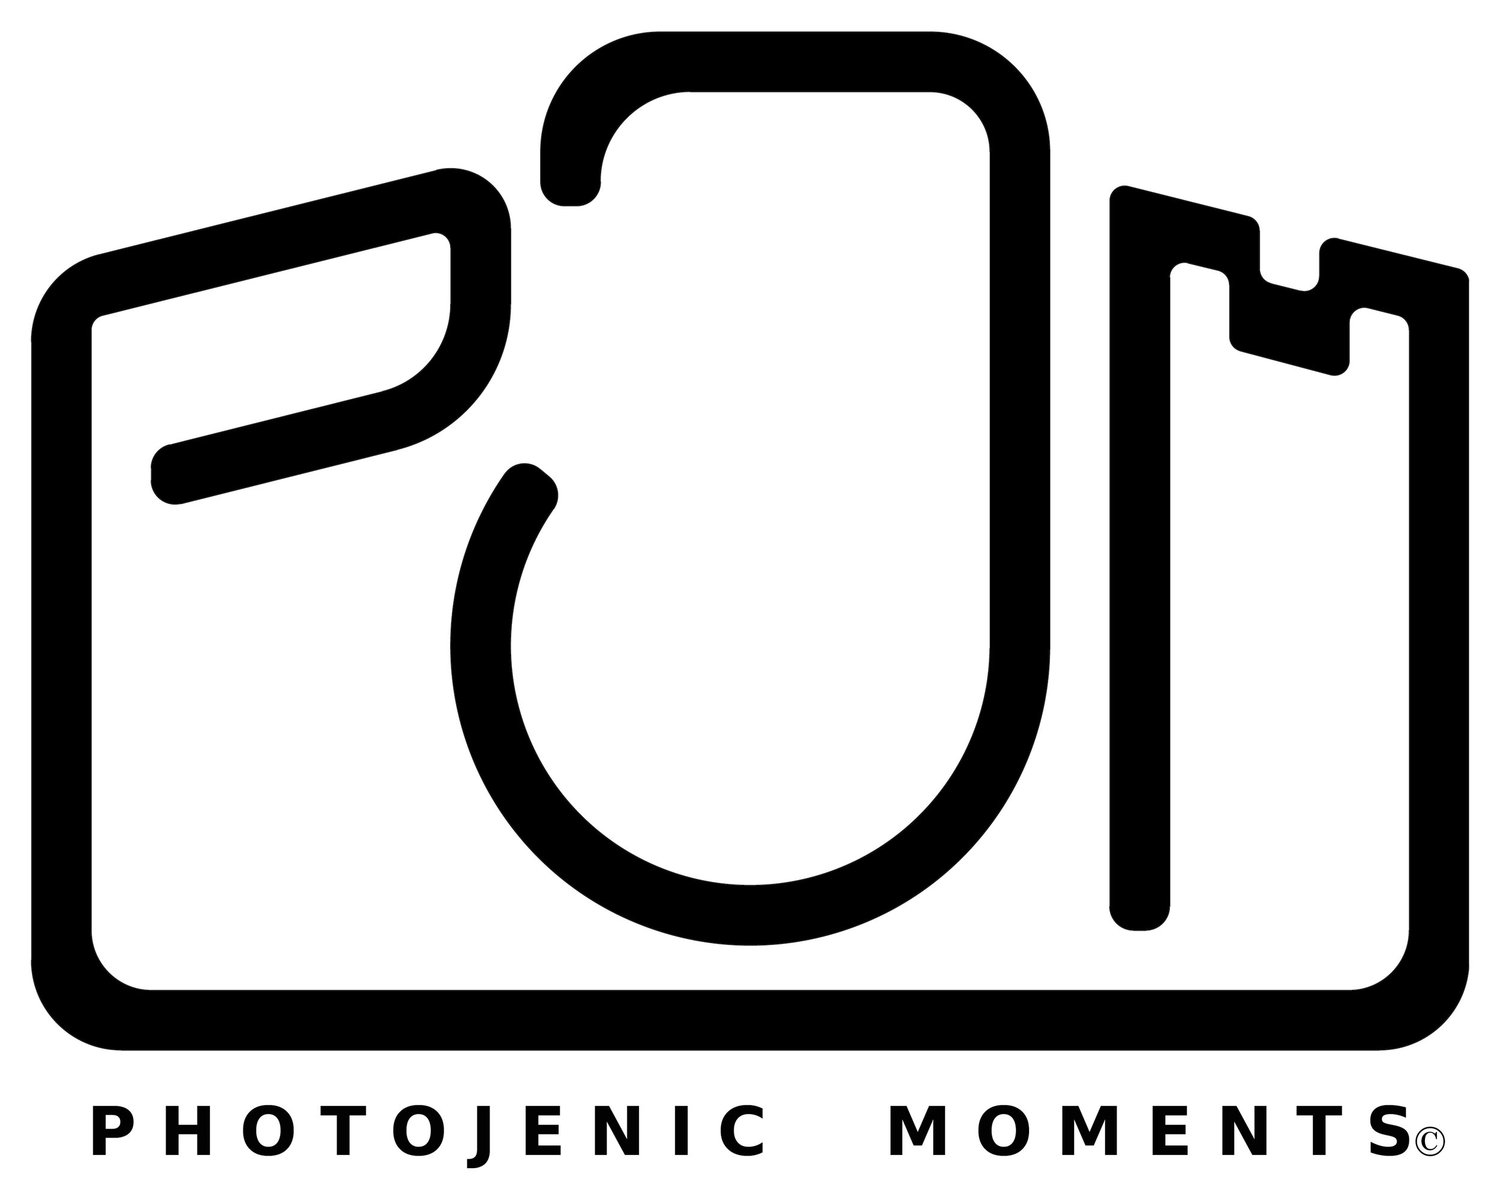 PhotoJenic Moments